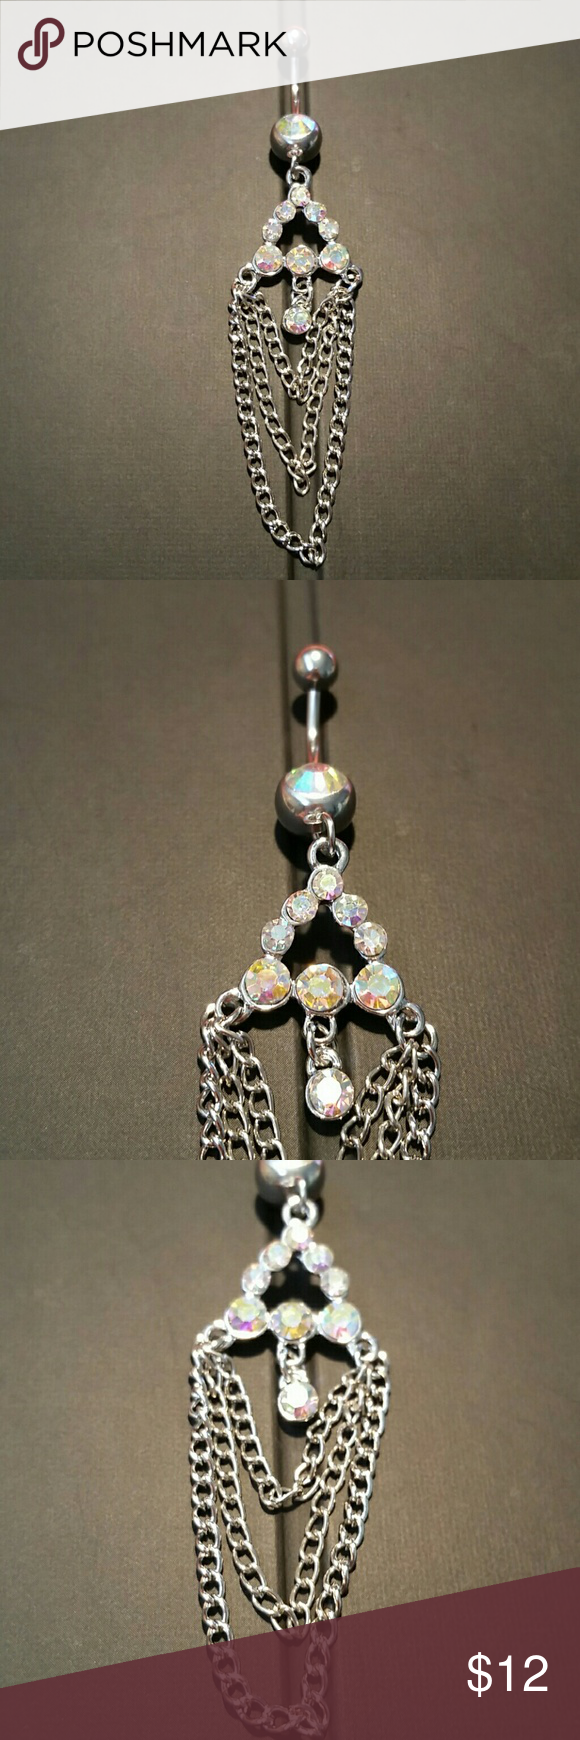 NEW AB Crystal Chandelier Chains Dangle Navel Ring  Thank you for